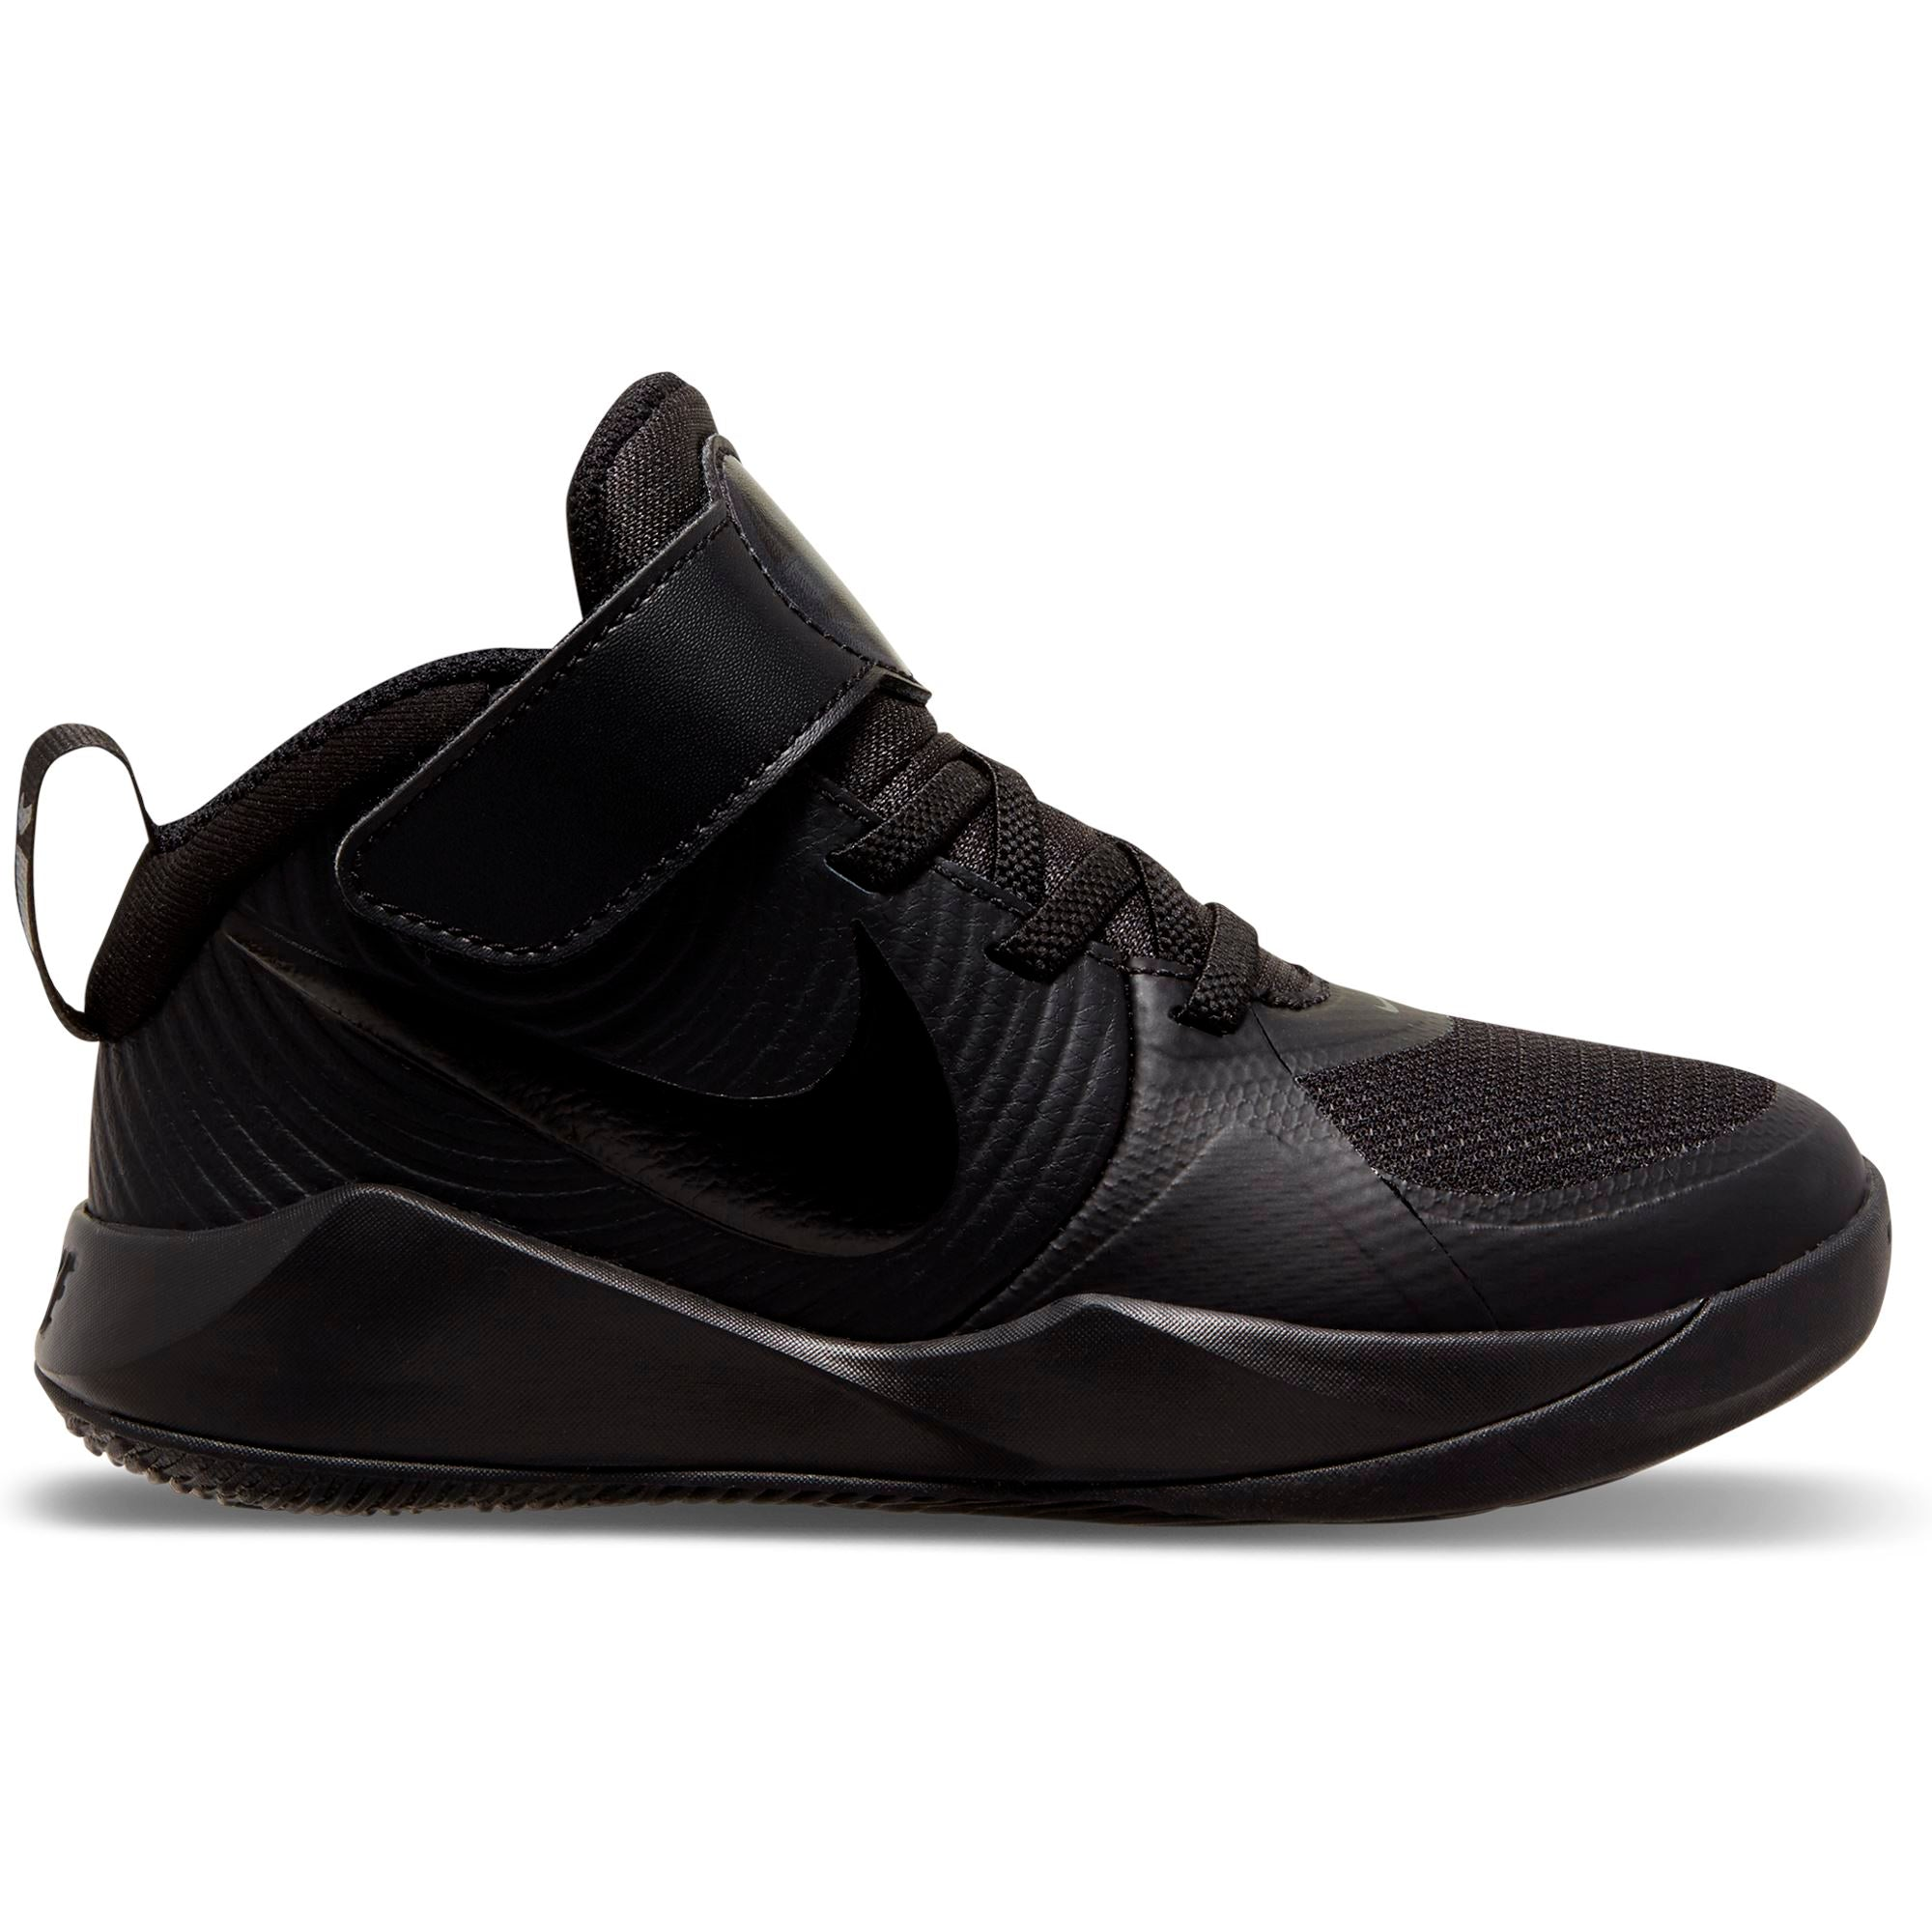 Nike Kids Team Hustle D 9 (Little Kids) - Black/Black-Dk Smoke Grey/Volt SP-Footwear-Kids Nike